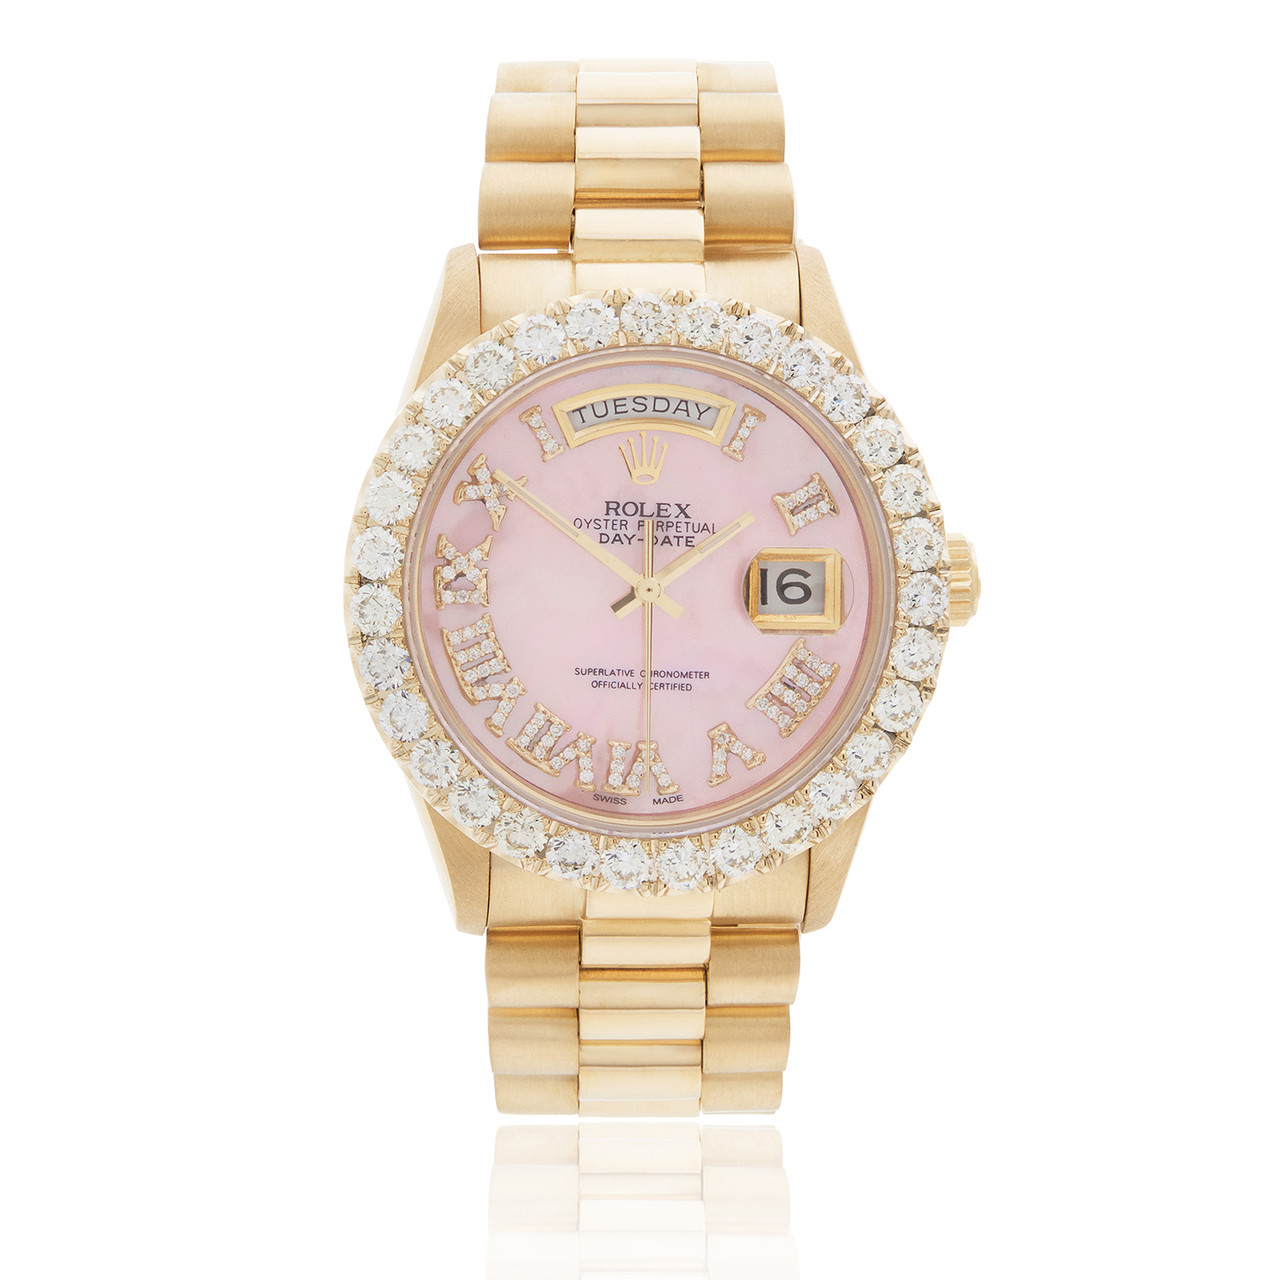 197032769e9 Rolex Day-Date 18K Yellow Gold President Pink Mother of Pearl 5ct Diamond  Bezel Automatic Men's Watch - Shyne Jewelers